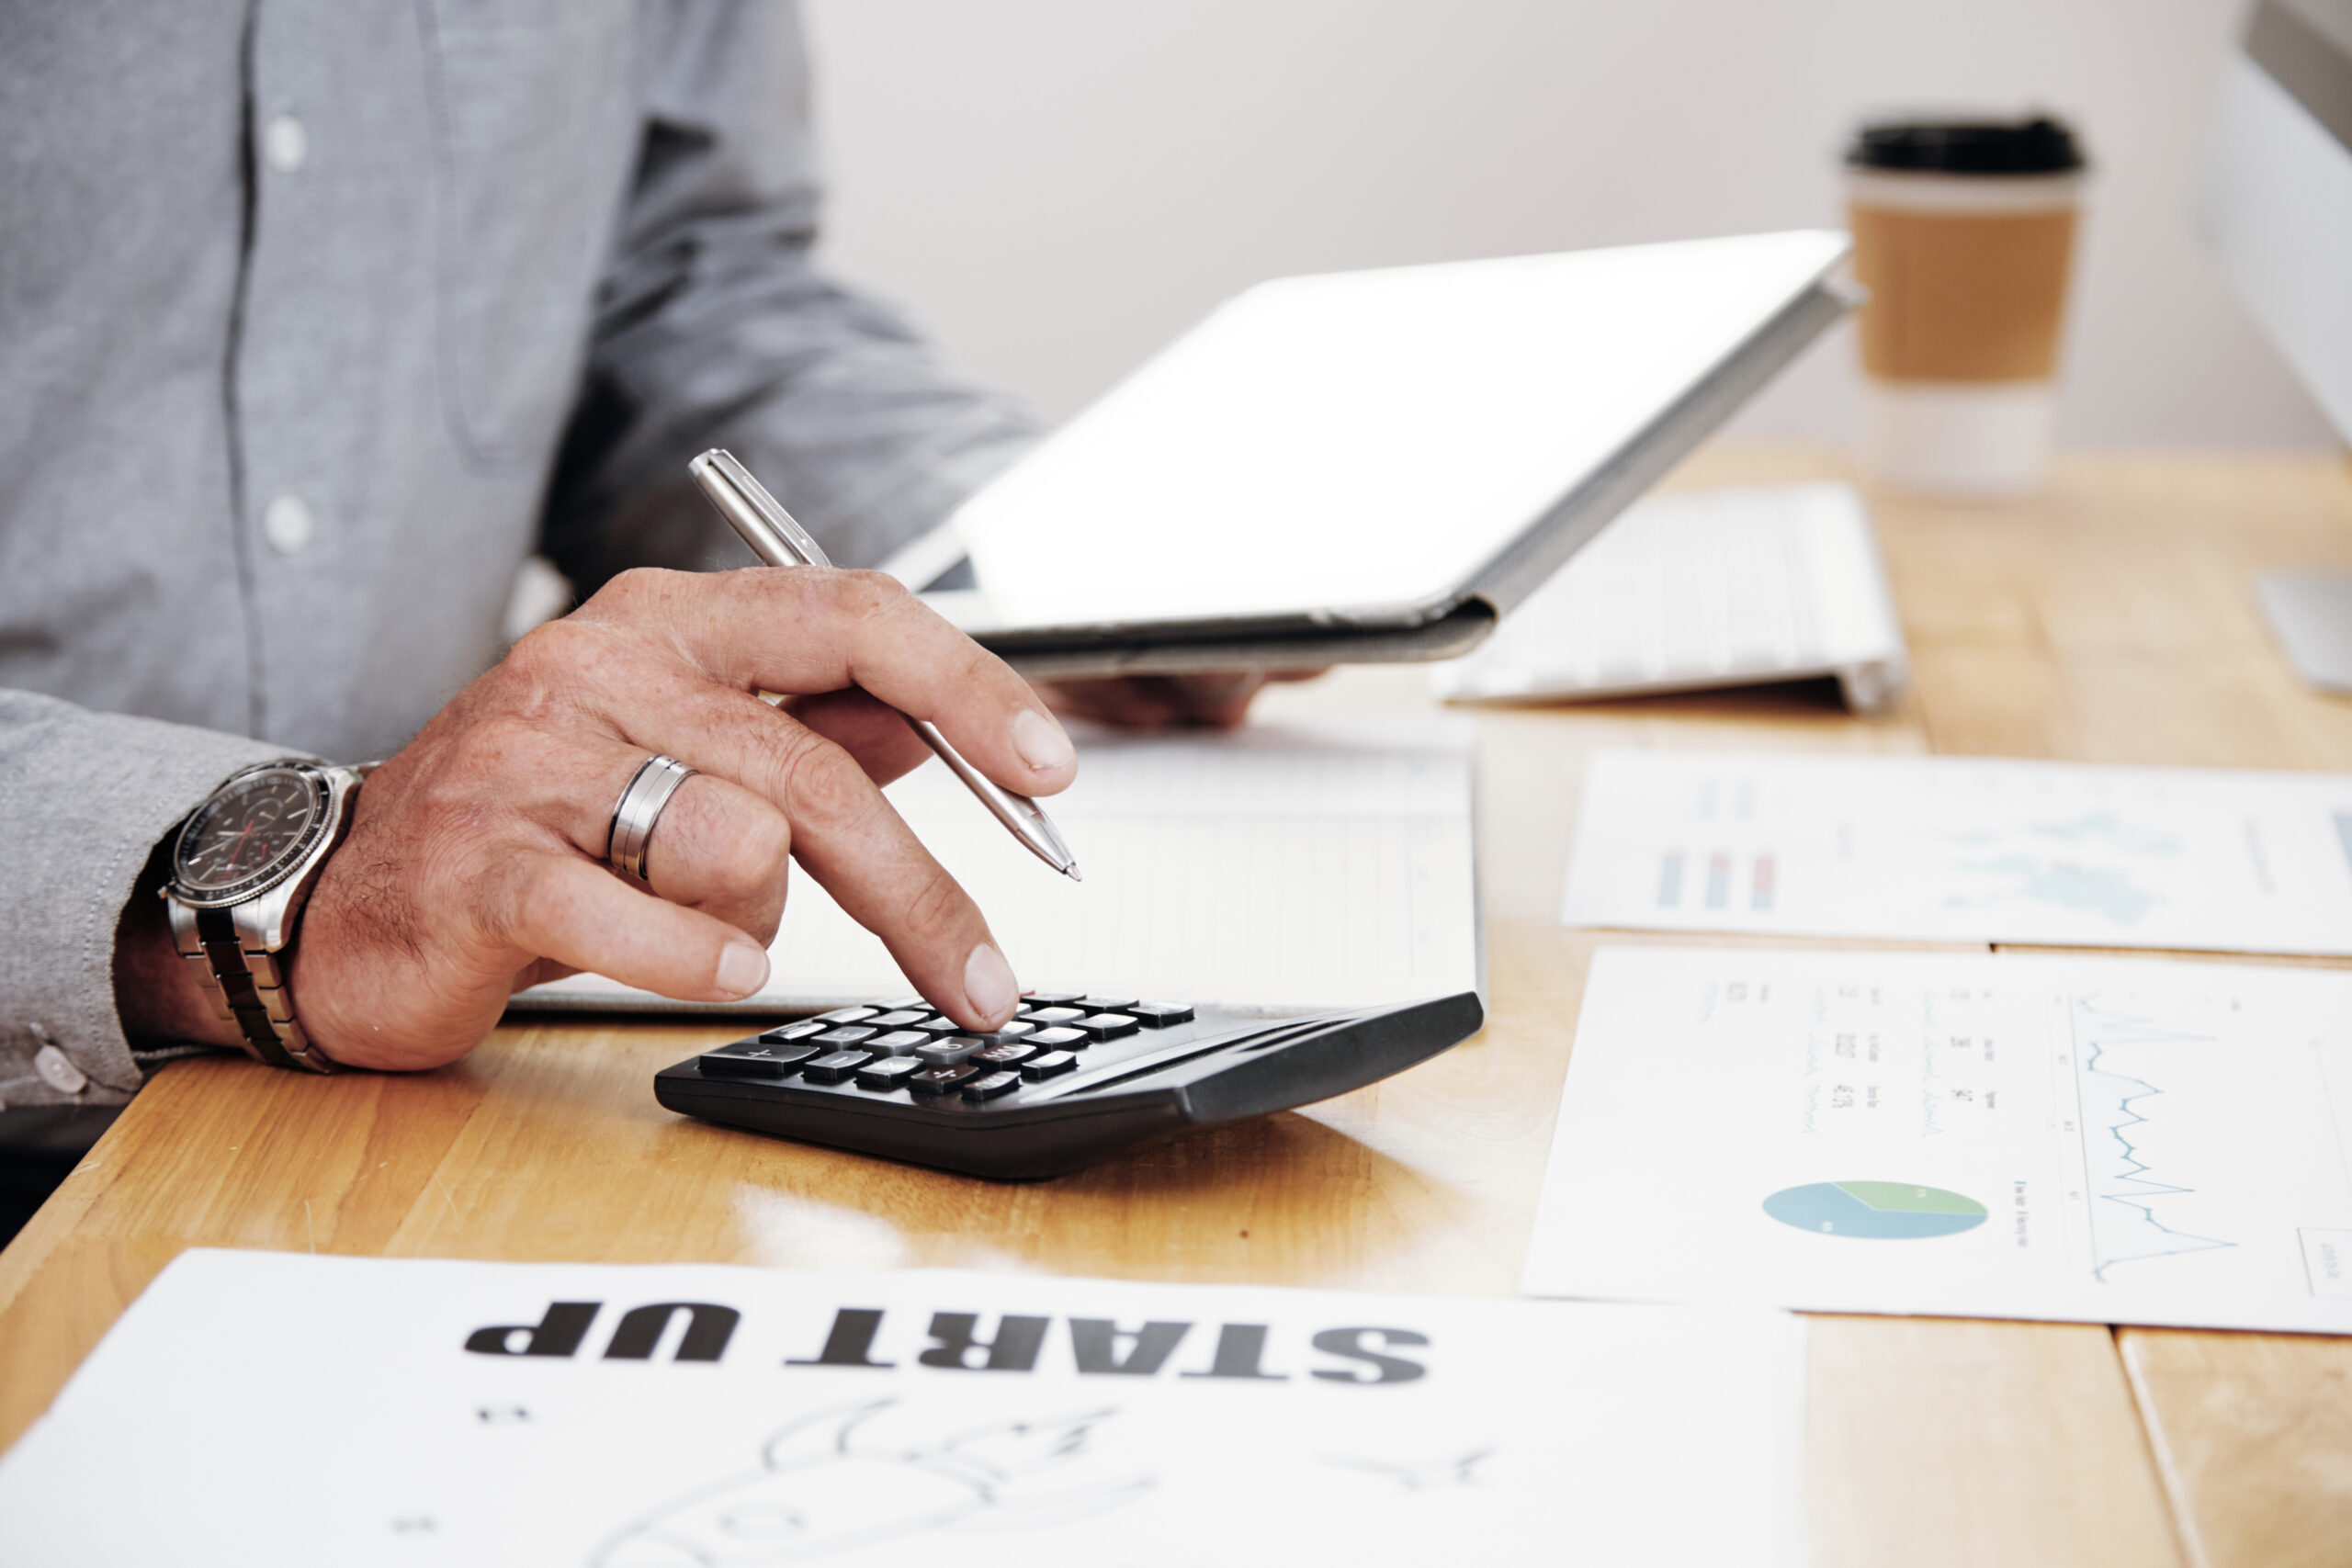 Accounting work at office 012345